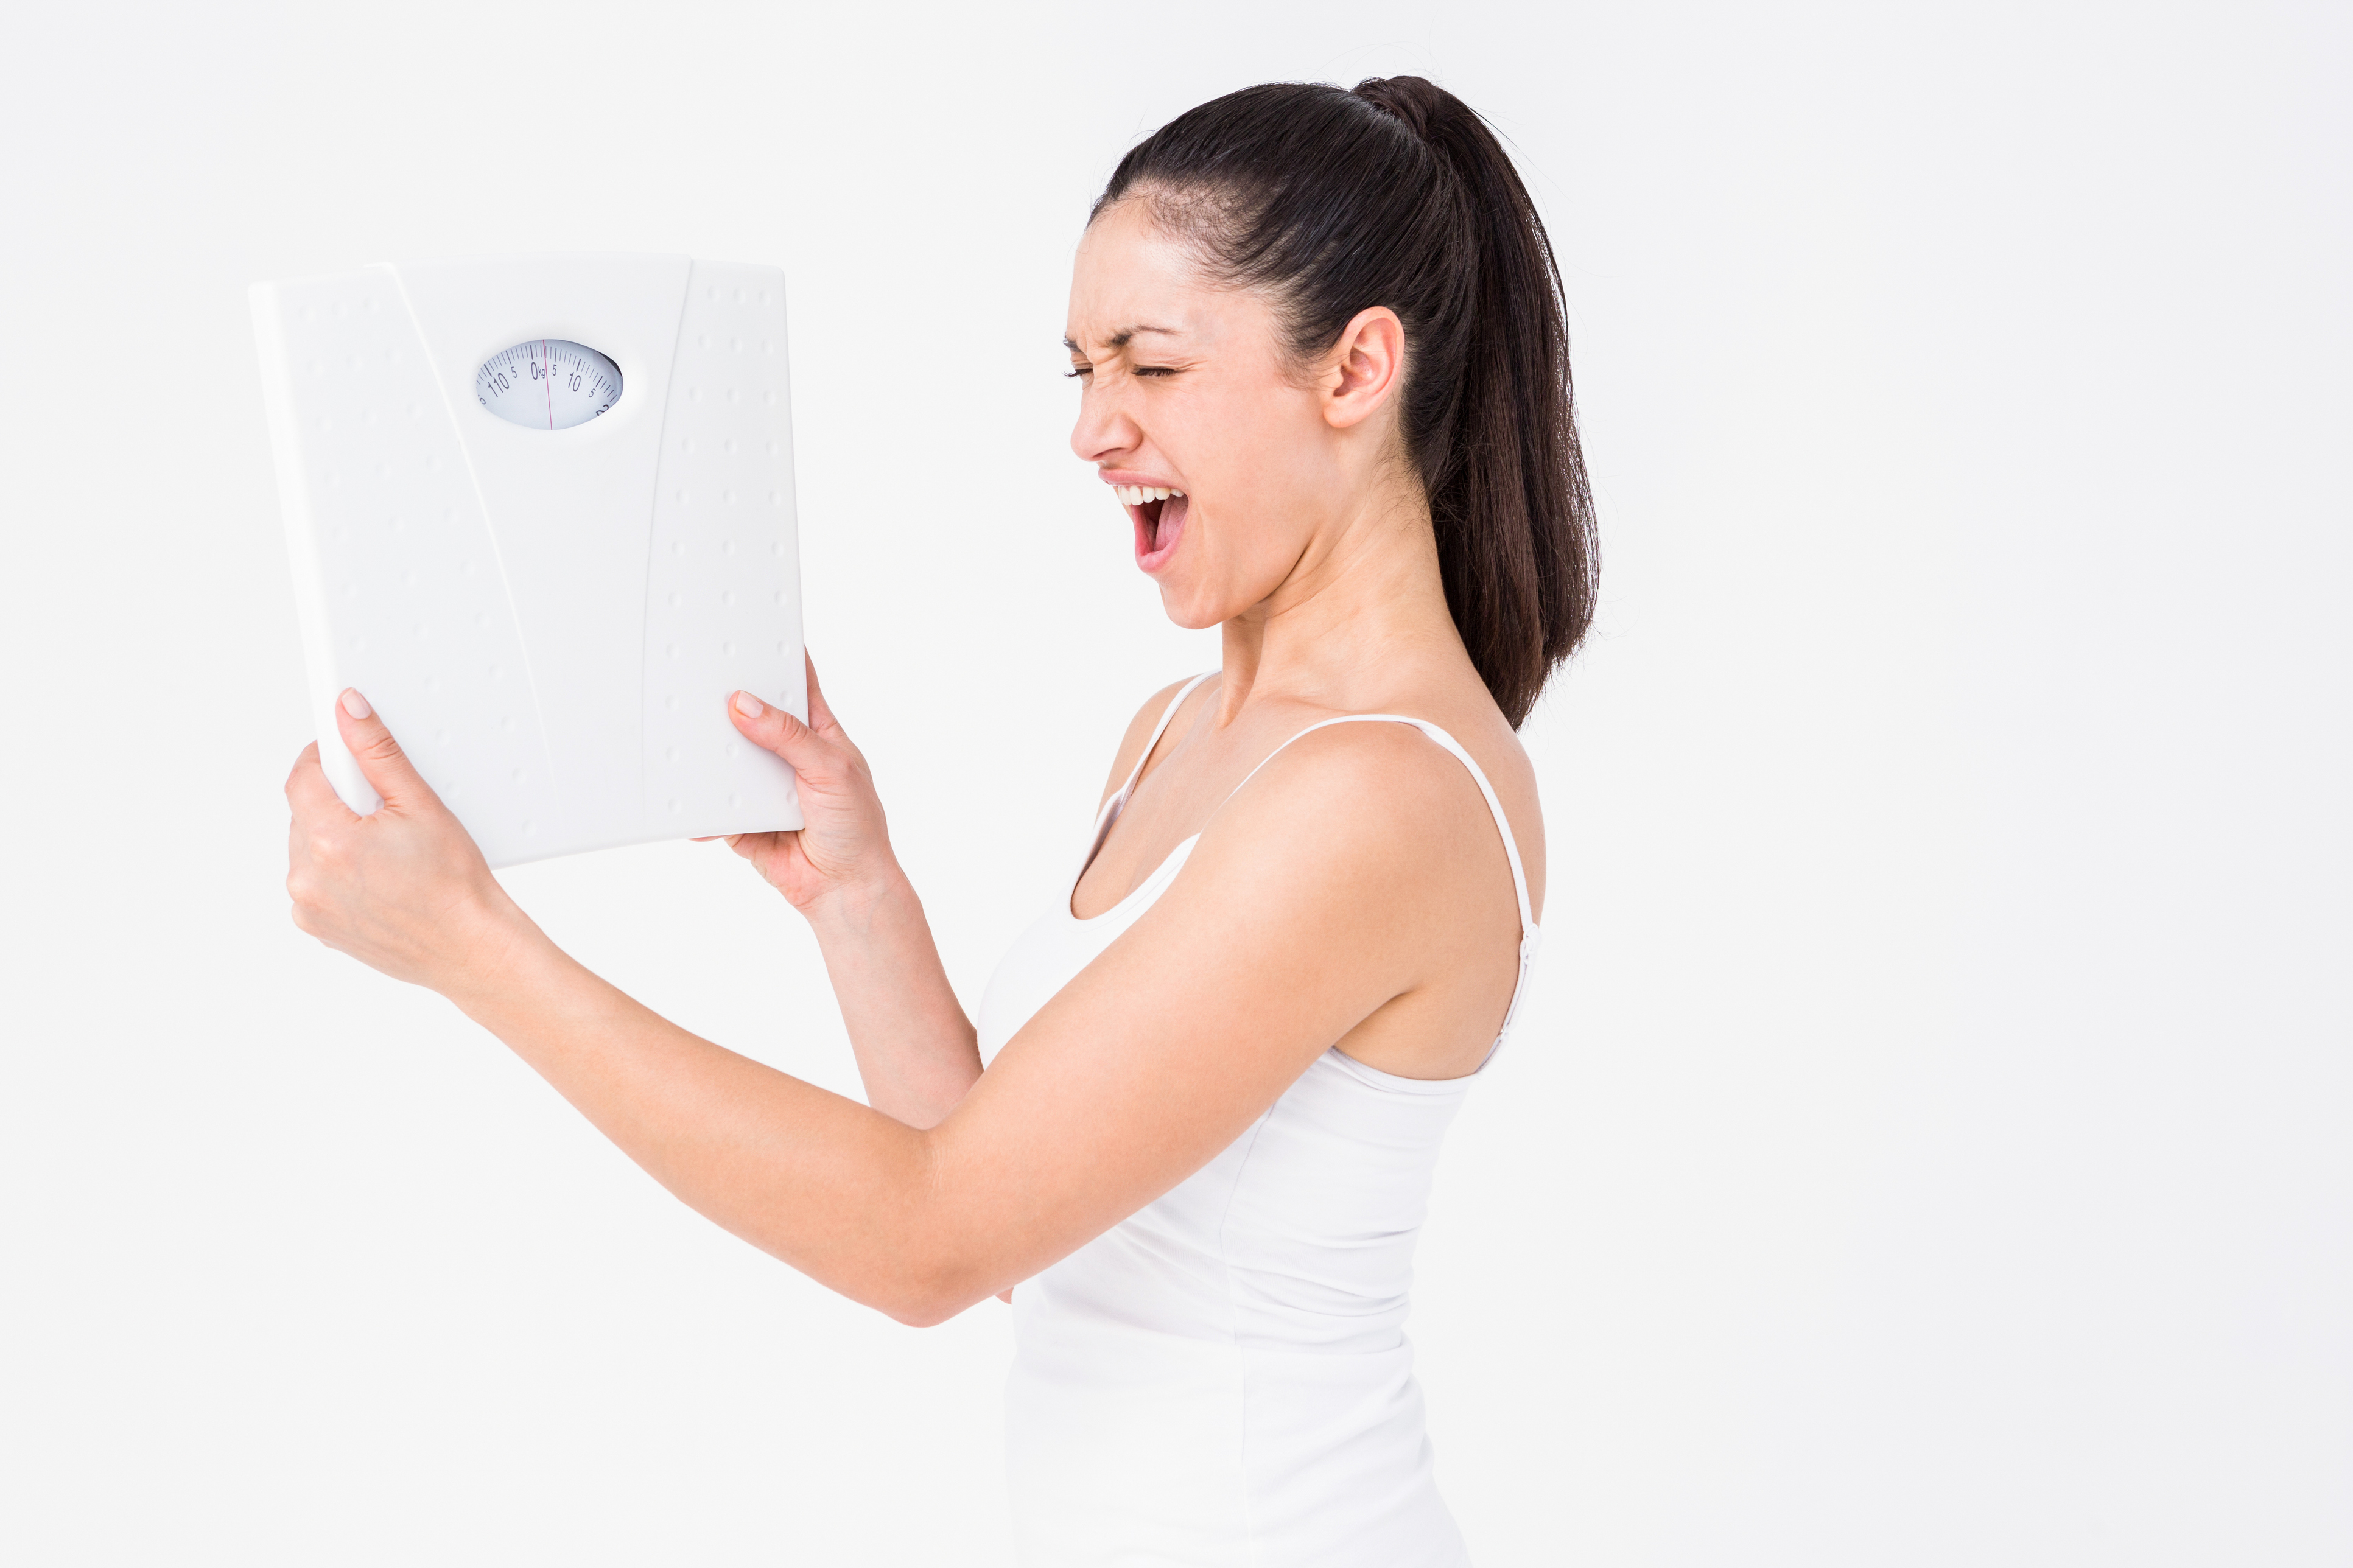 Debunking Fad Diets: Why Diets Don't Work